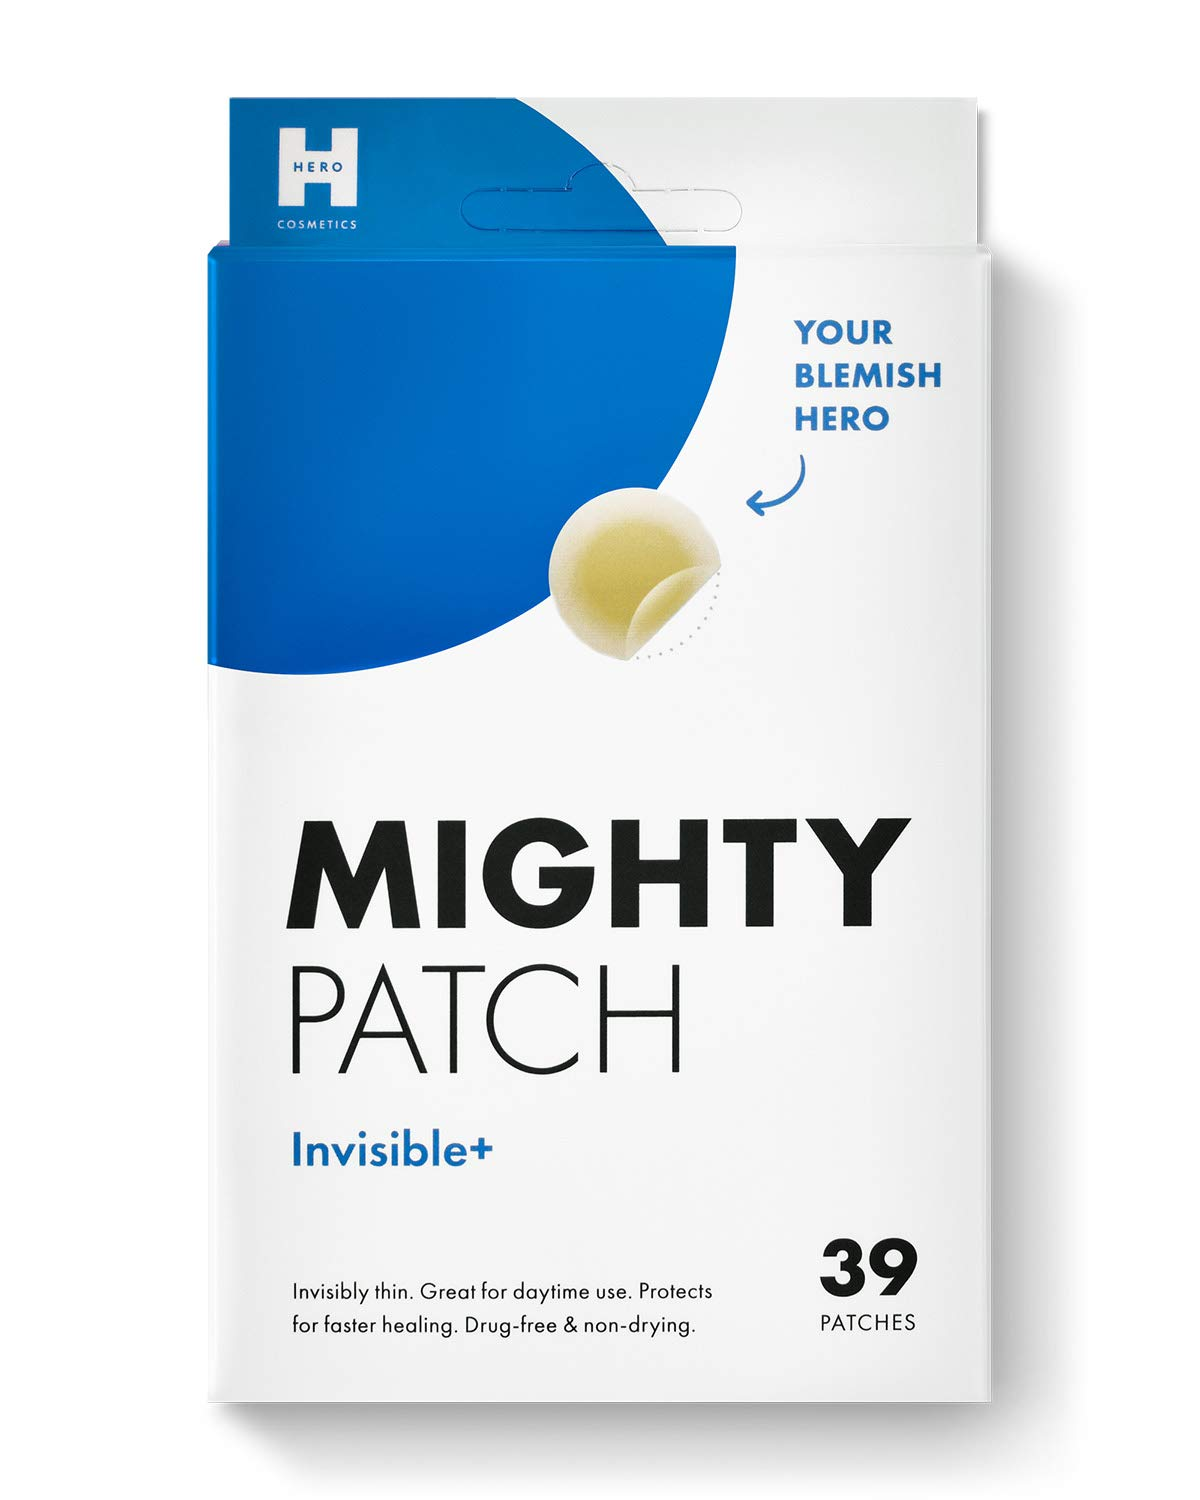 Mighty Patch - Mighty Patch Invisible Hydrocolloid Acne Pimple Patch Ultra Thin Spot Treatment (39 count) for Face and Day, Vegan, Cruelty-Free